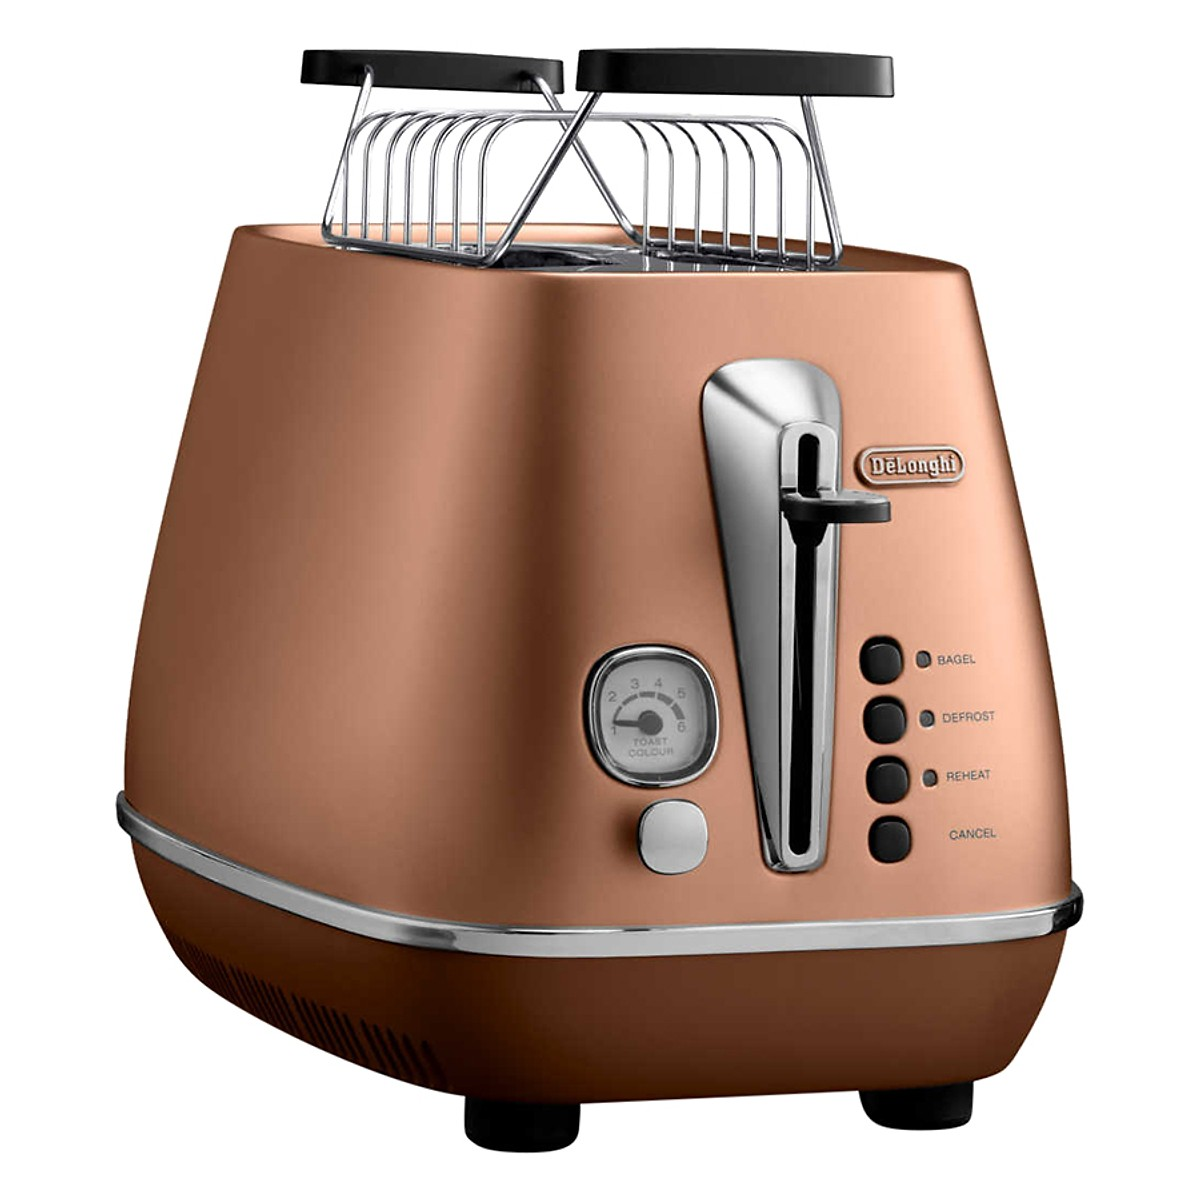 may nuong banh mi distinta delonghi cti2103